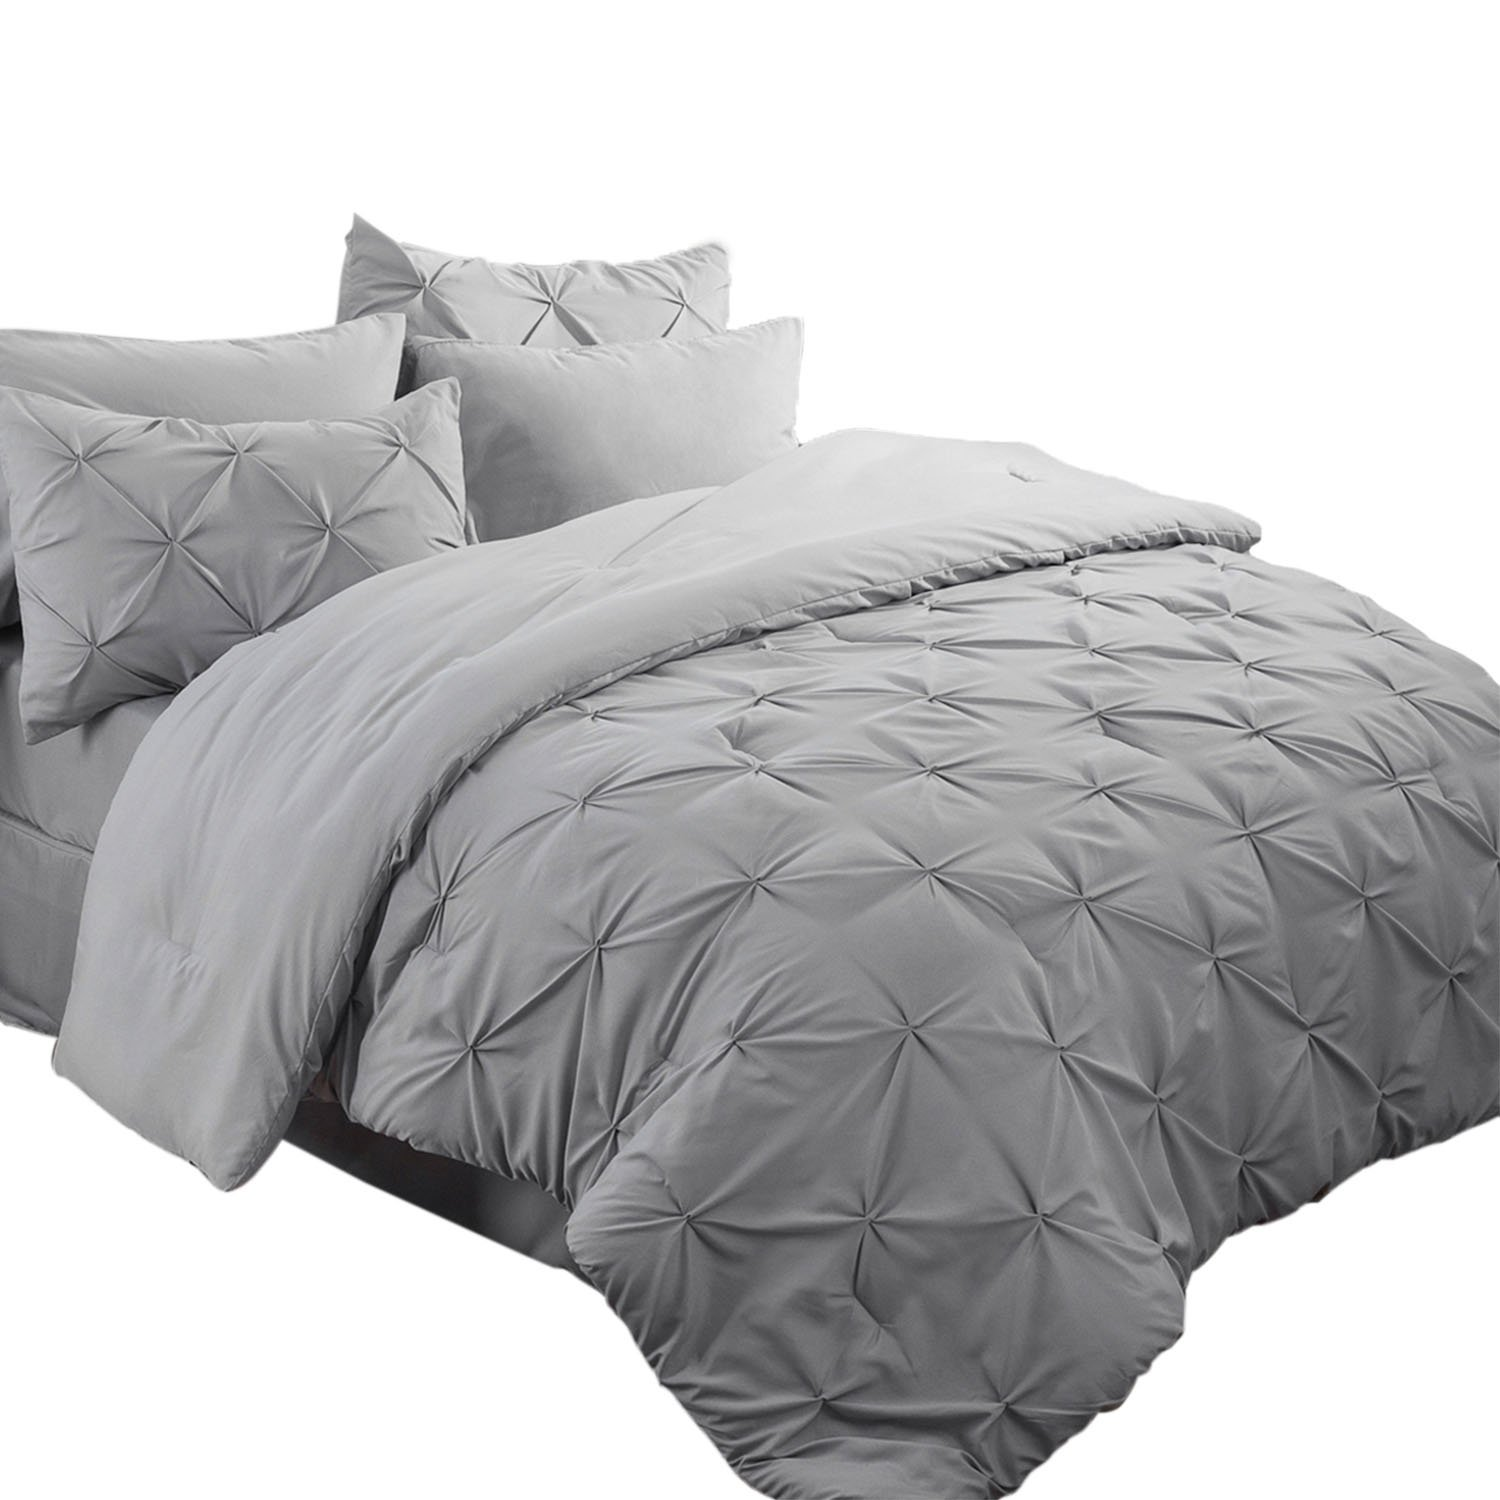 Bedsure 8 Piece Pinch Pleat Down Alternative Comforter Set King Size (102''X90'') Solid Grey Bed in A Bag (Comforter, 2 Pillow Shams, Flat Sheet, Fitted Sheet, Bed Skirt, 2 Pillowcases)